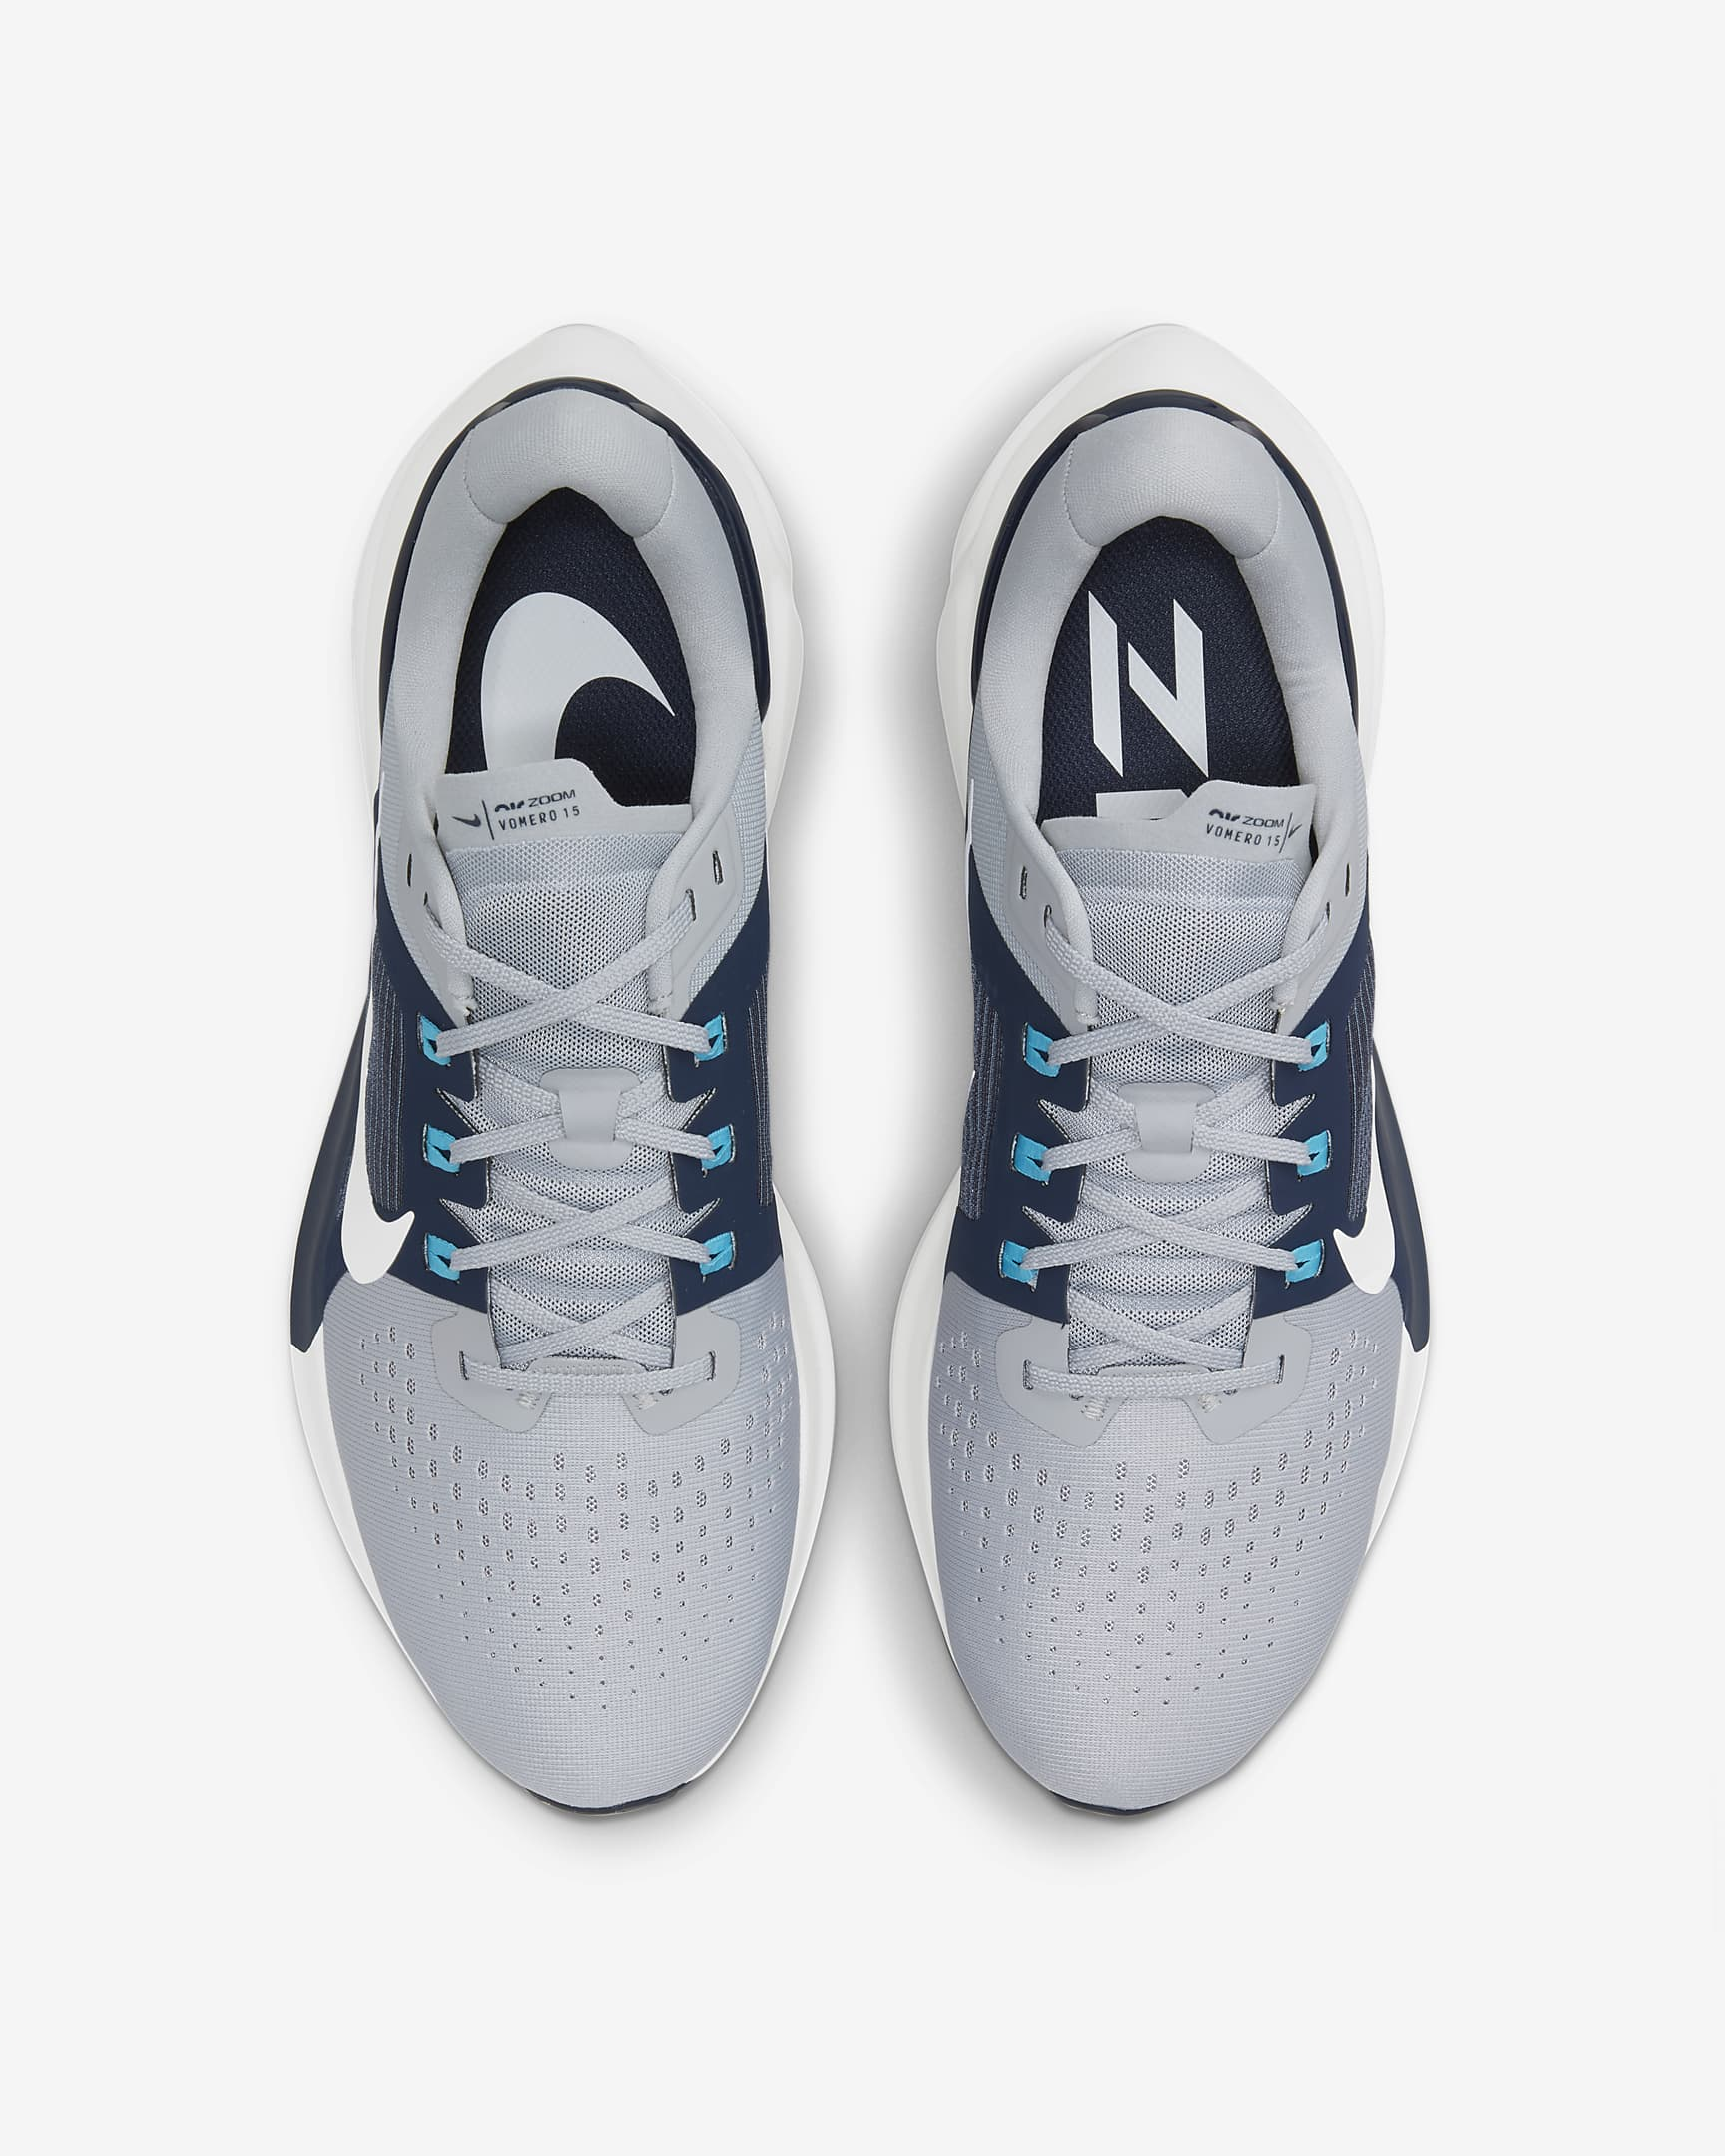 Nike Air Zoom Vomero 15 Men's Trainers